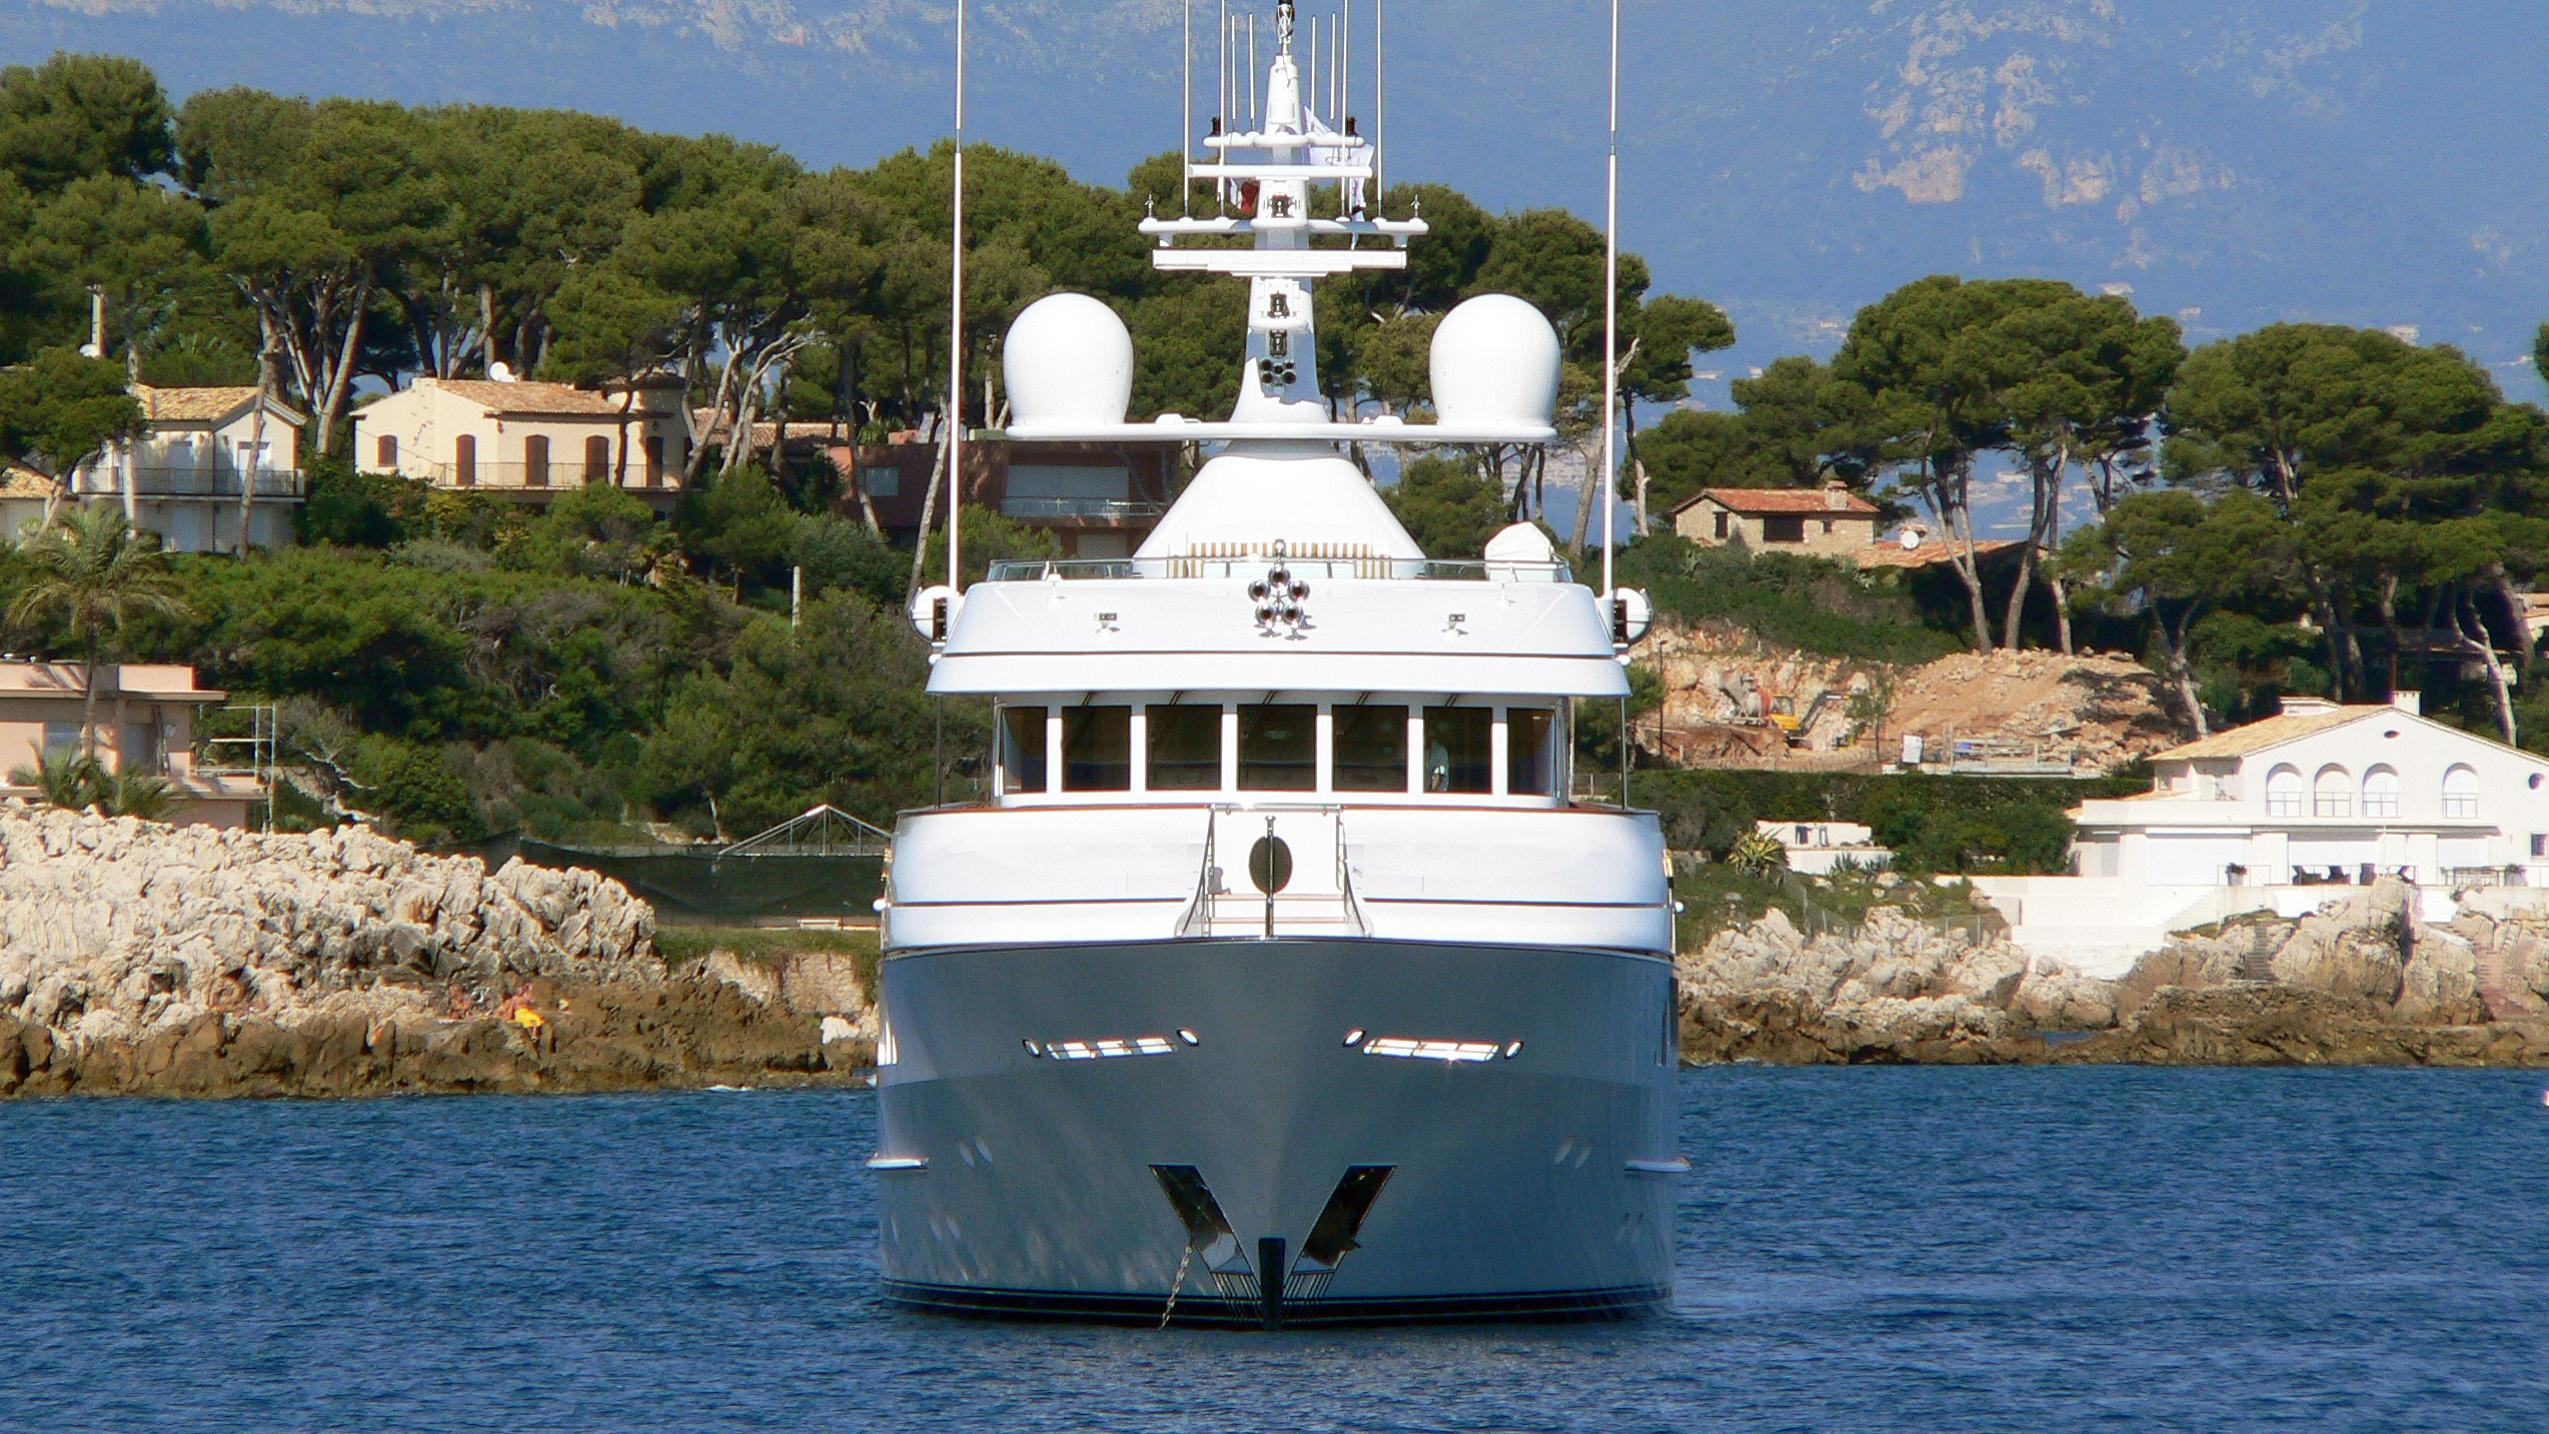 lady-india-motor-yacht-feadship-2003-39m-bow